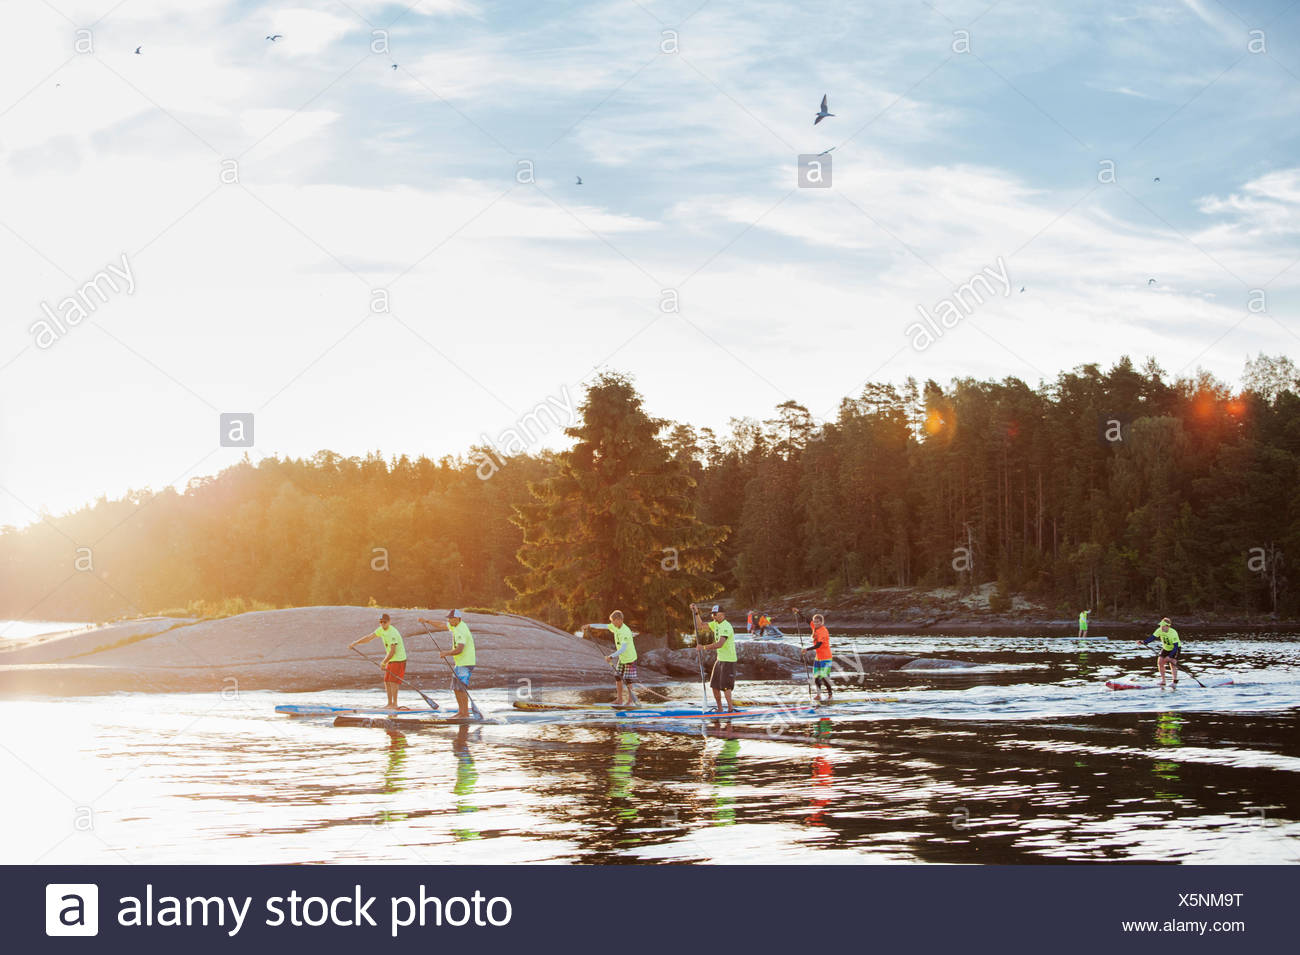 Finland, Varsinais-Suomi, Eura, Paddlers by shore during race - Stock Image